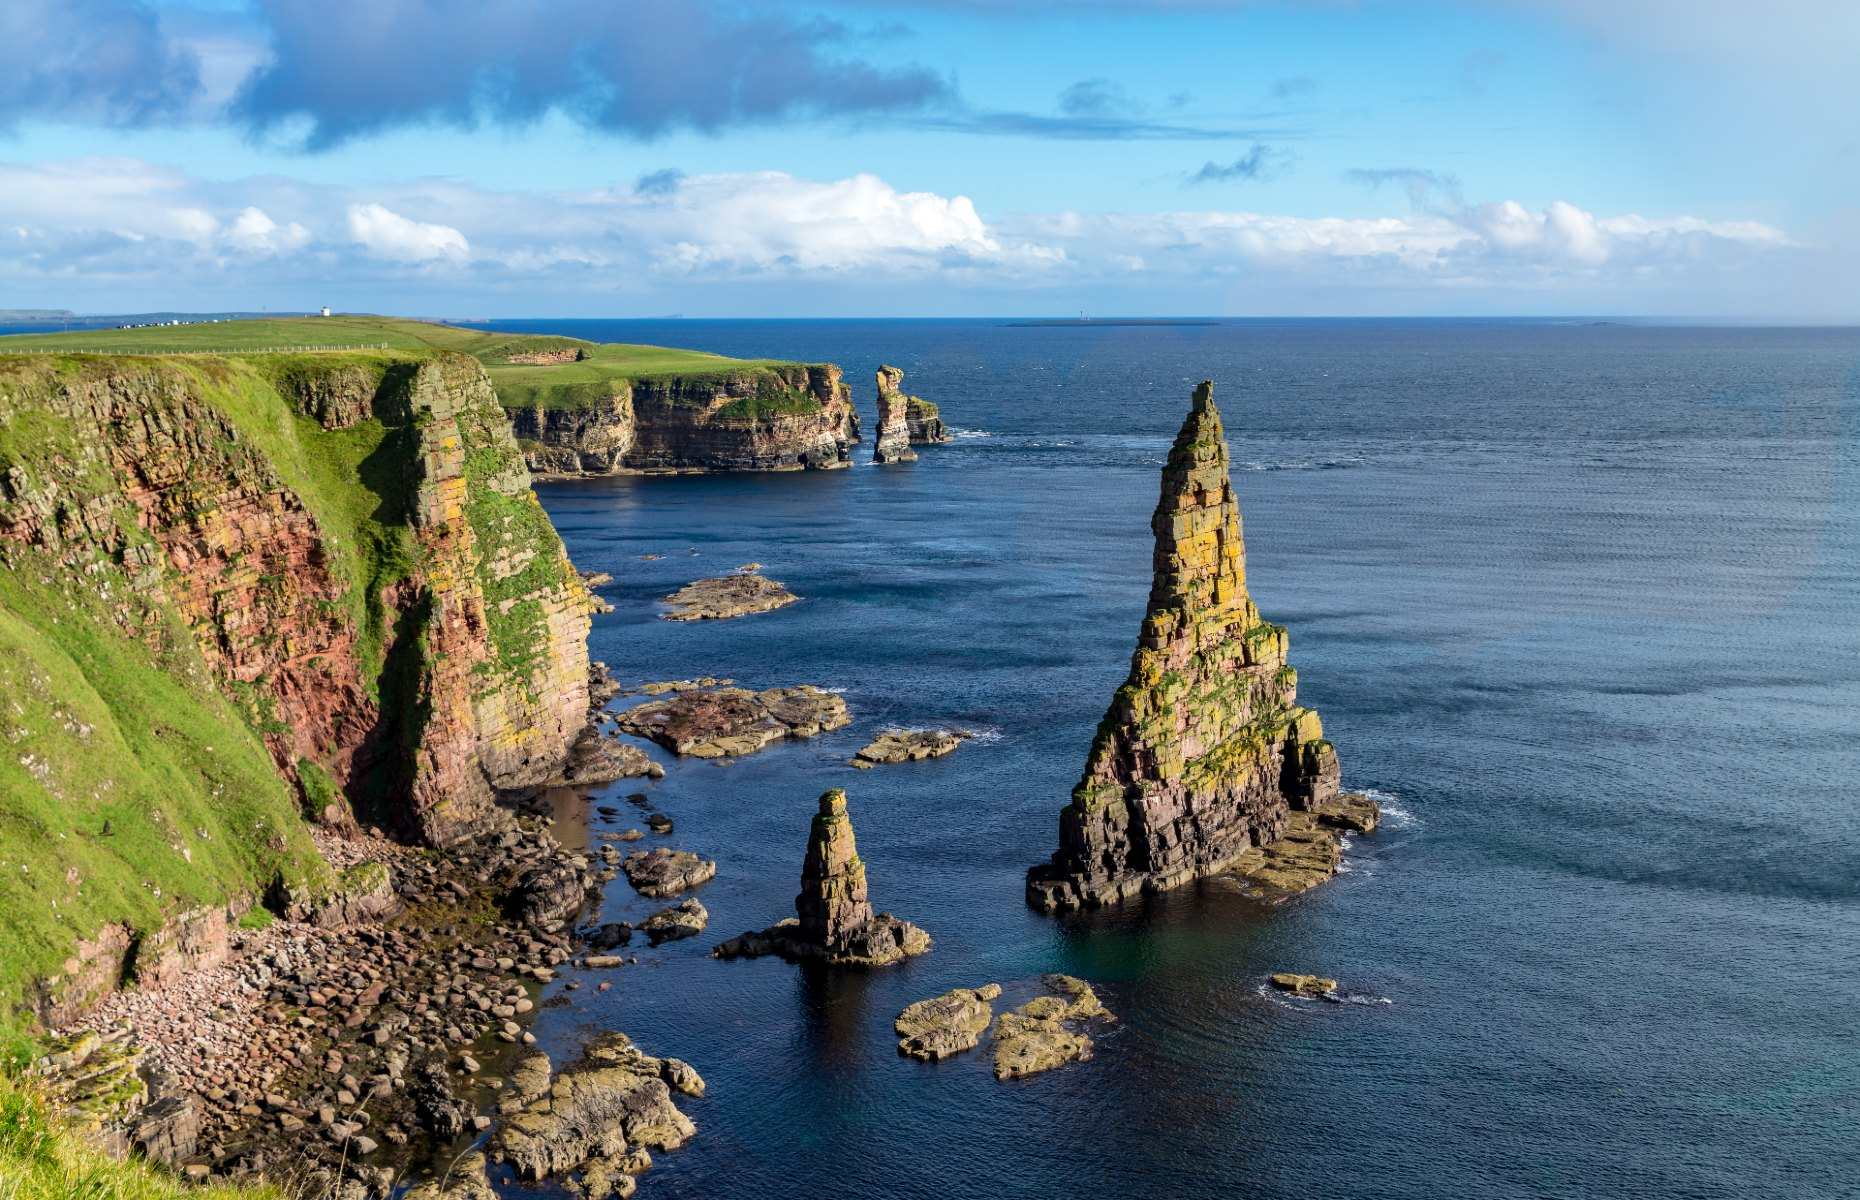 Duncansby Sea Stacks (Image: Catuncia/Shutterstock)